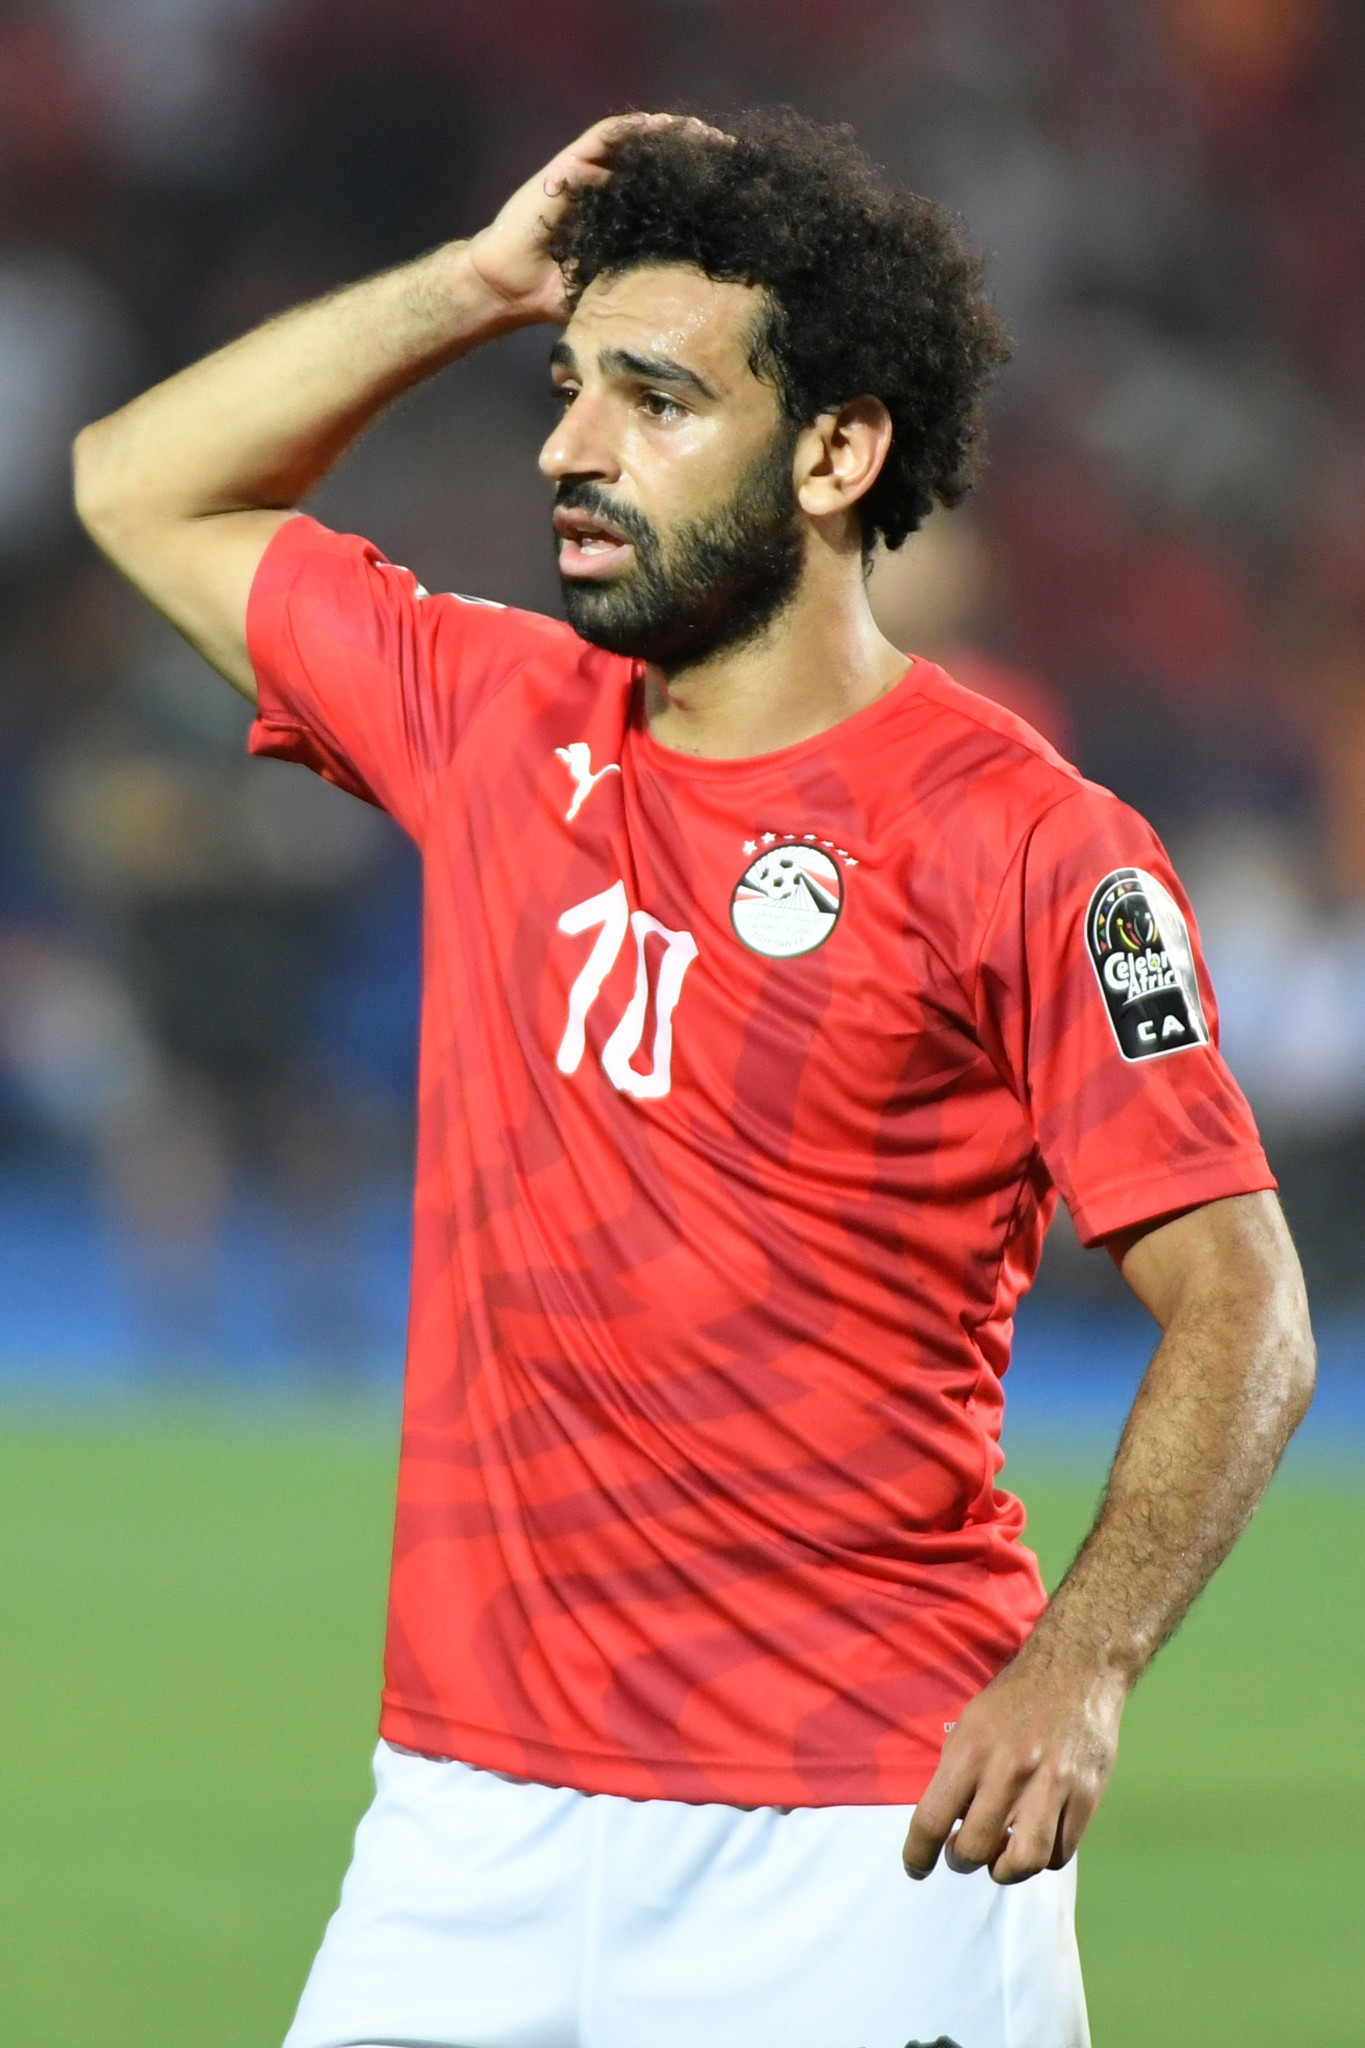 Egypt's Mohamed Salah takes in a shattering defeat after the hosts of the Africa Cup of Nations are beaten 1-0 by South Africa ©Getty Images